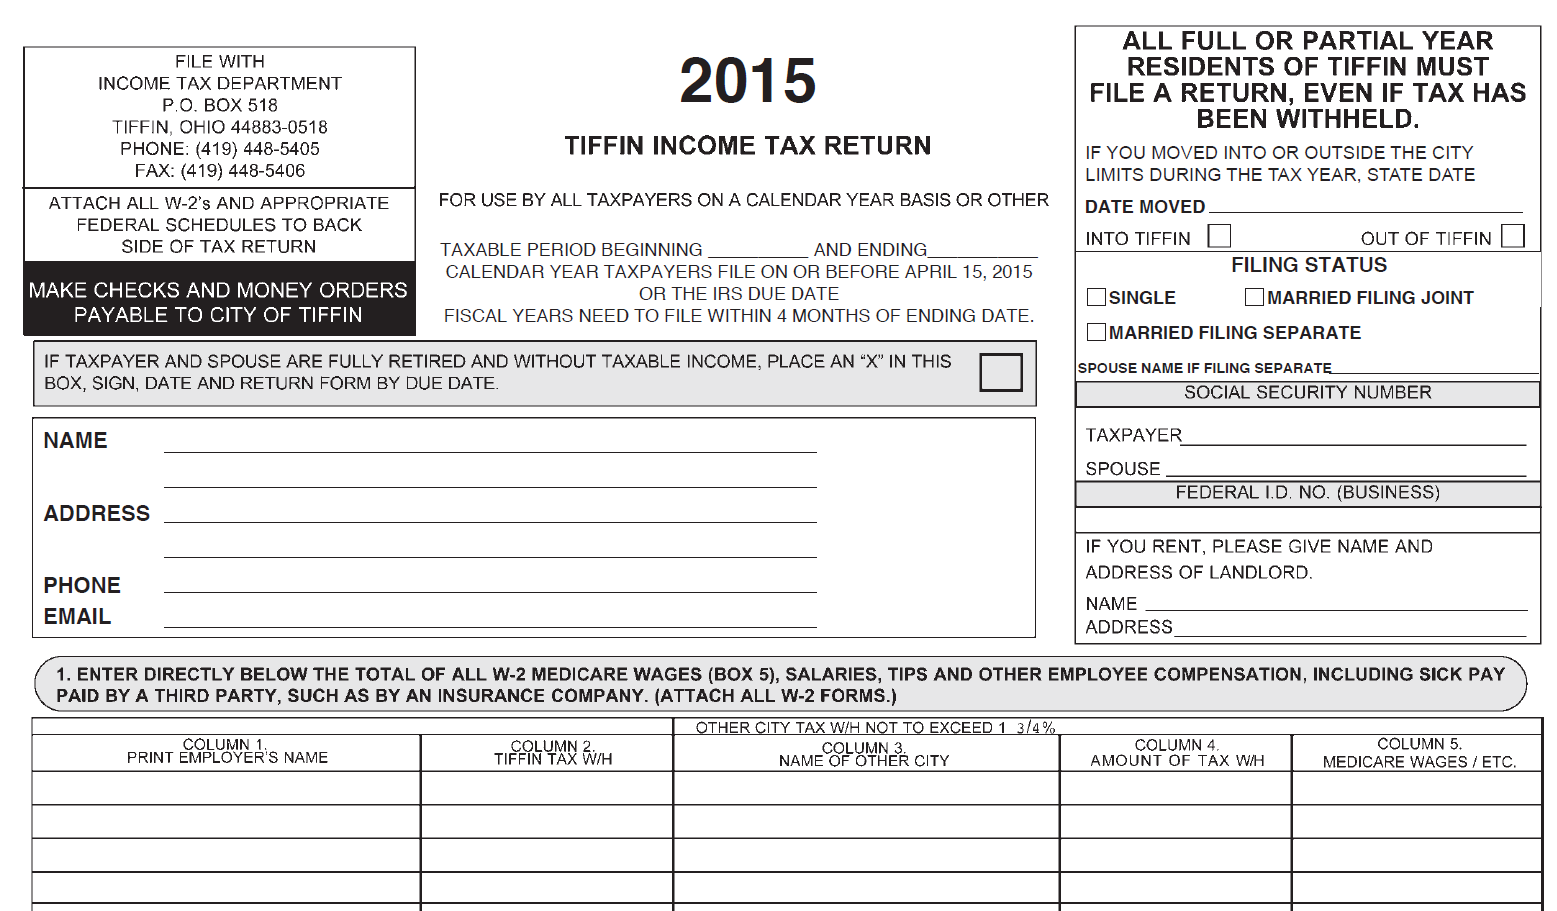 2015 City Income Tax Form | City of Tiffin